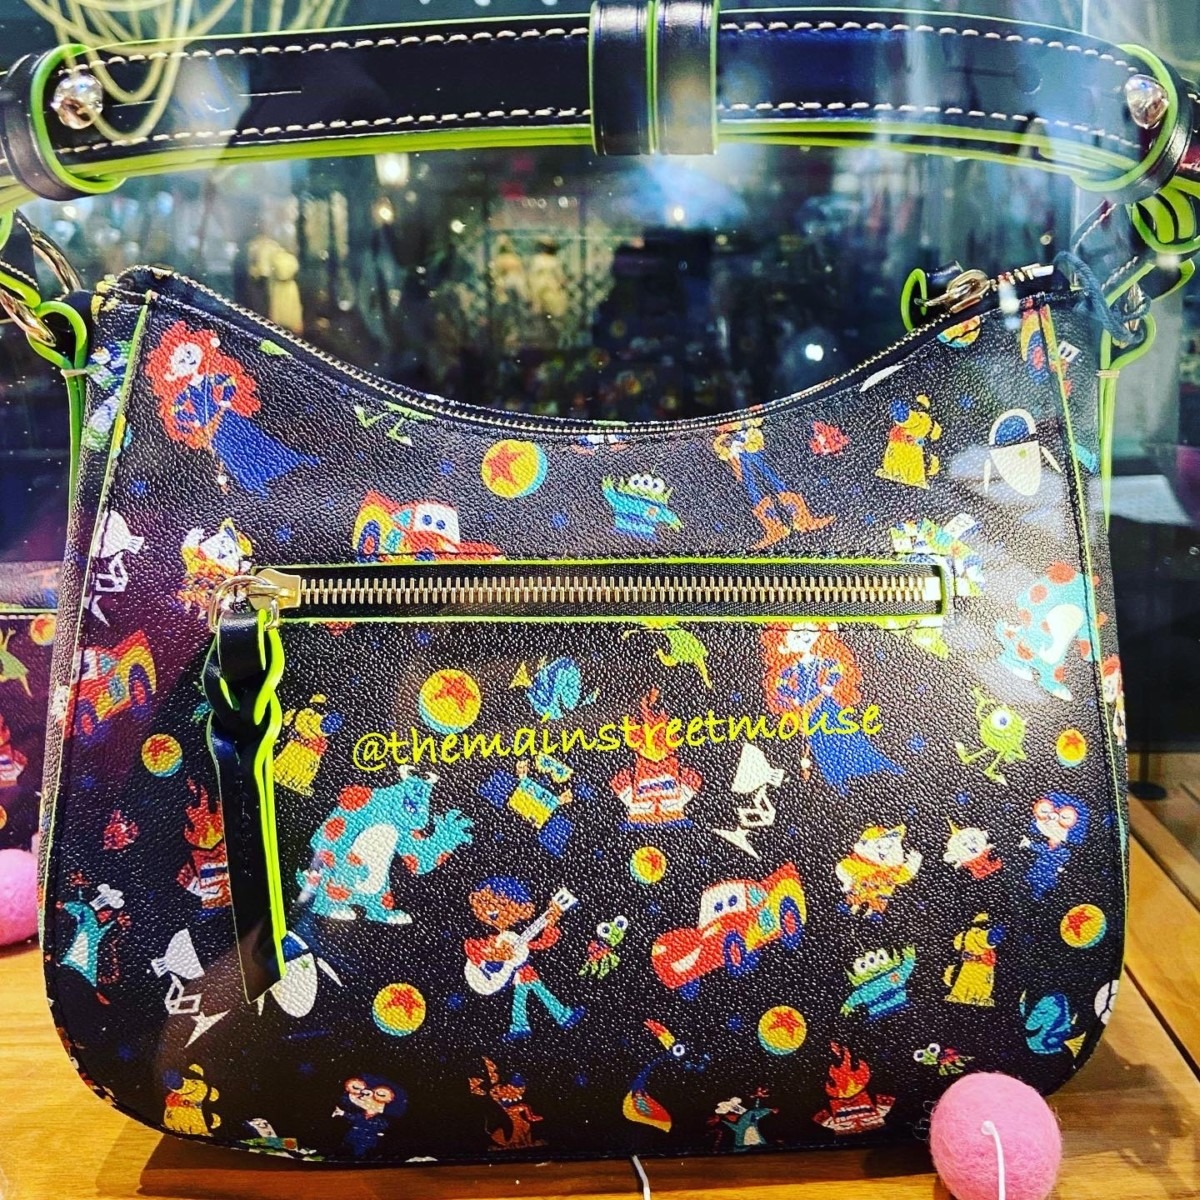 New Pixar Dooney & Bourke Bags Out Tomorrow! 4